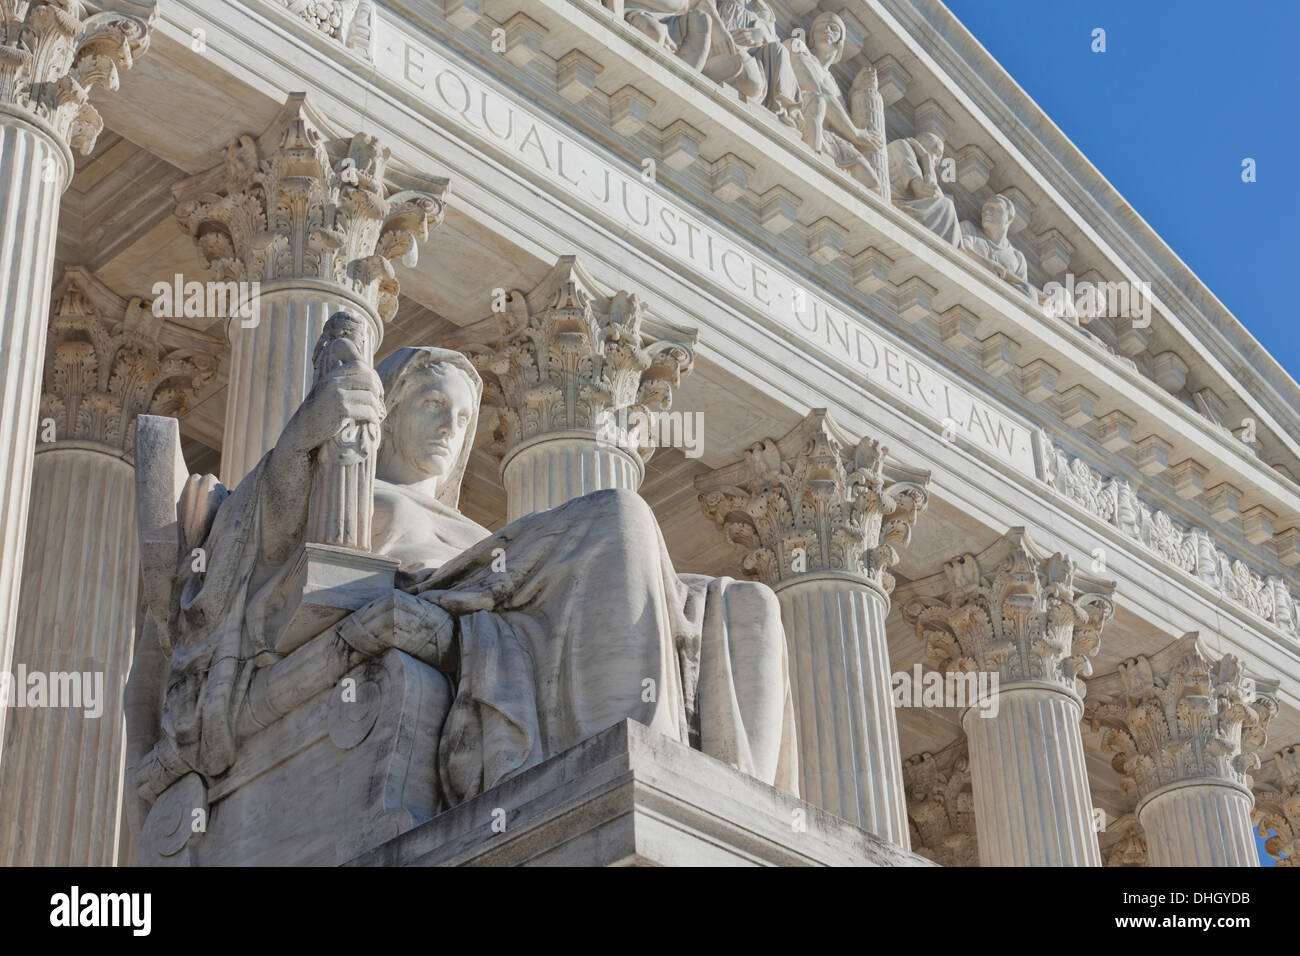 Contemplation of Justice statue at US Supreme Court building - Washington, DC USA - Stock Image